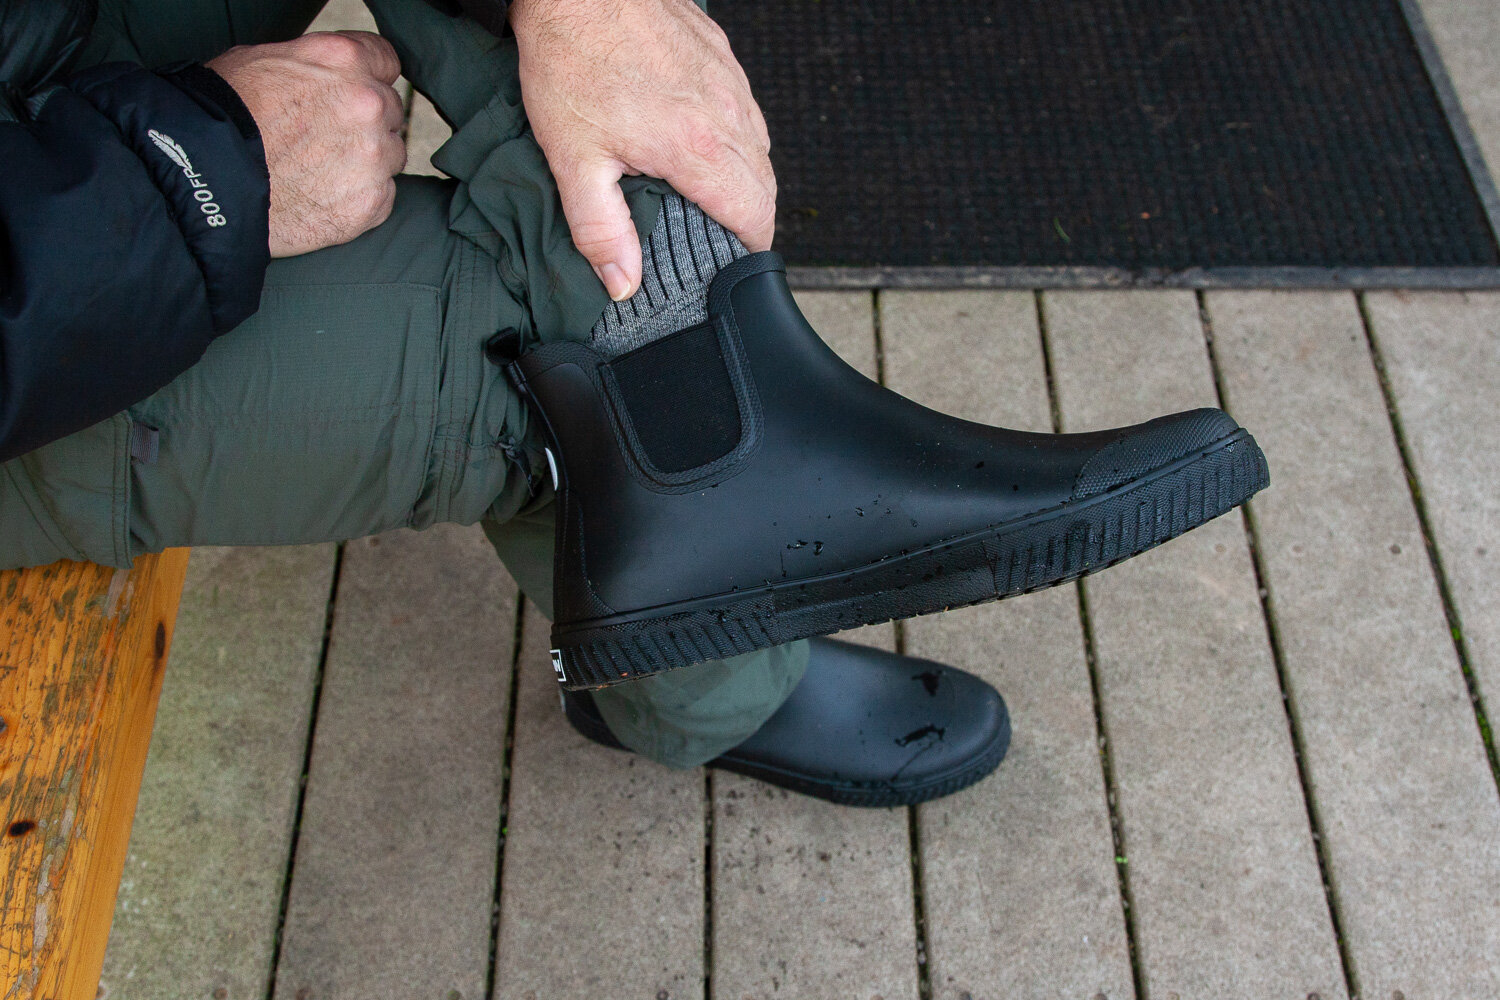 Do You Wear Socks With Rubber Boots